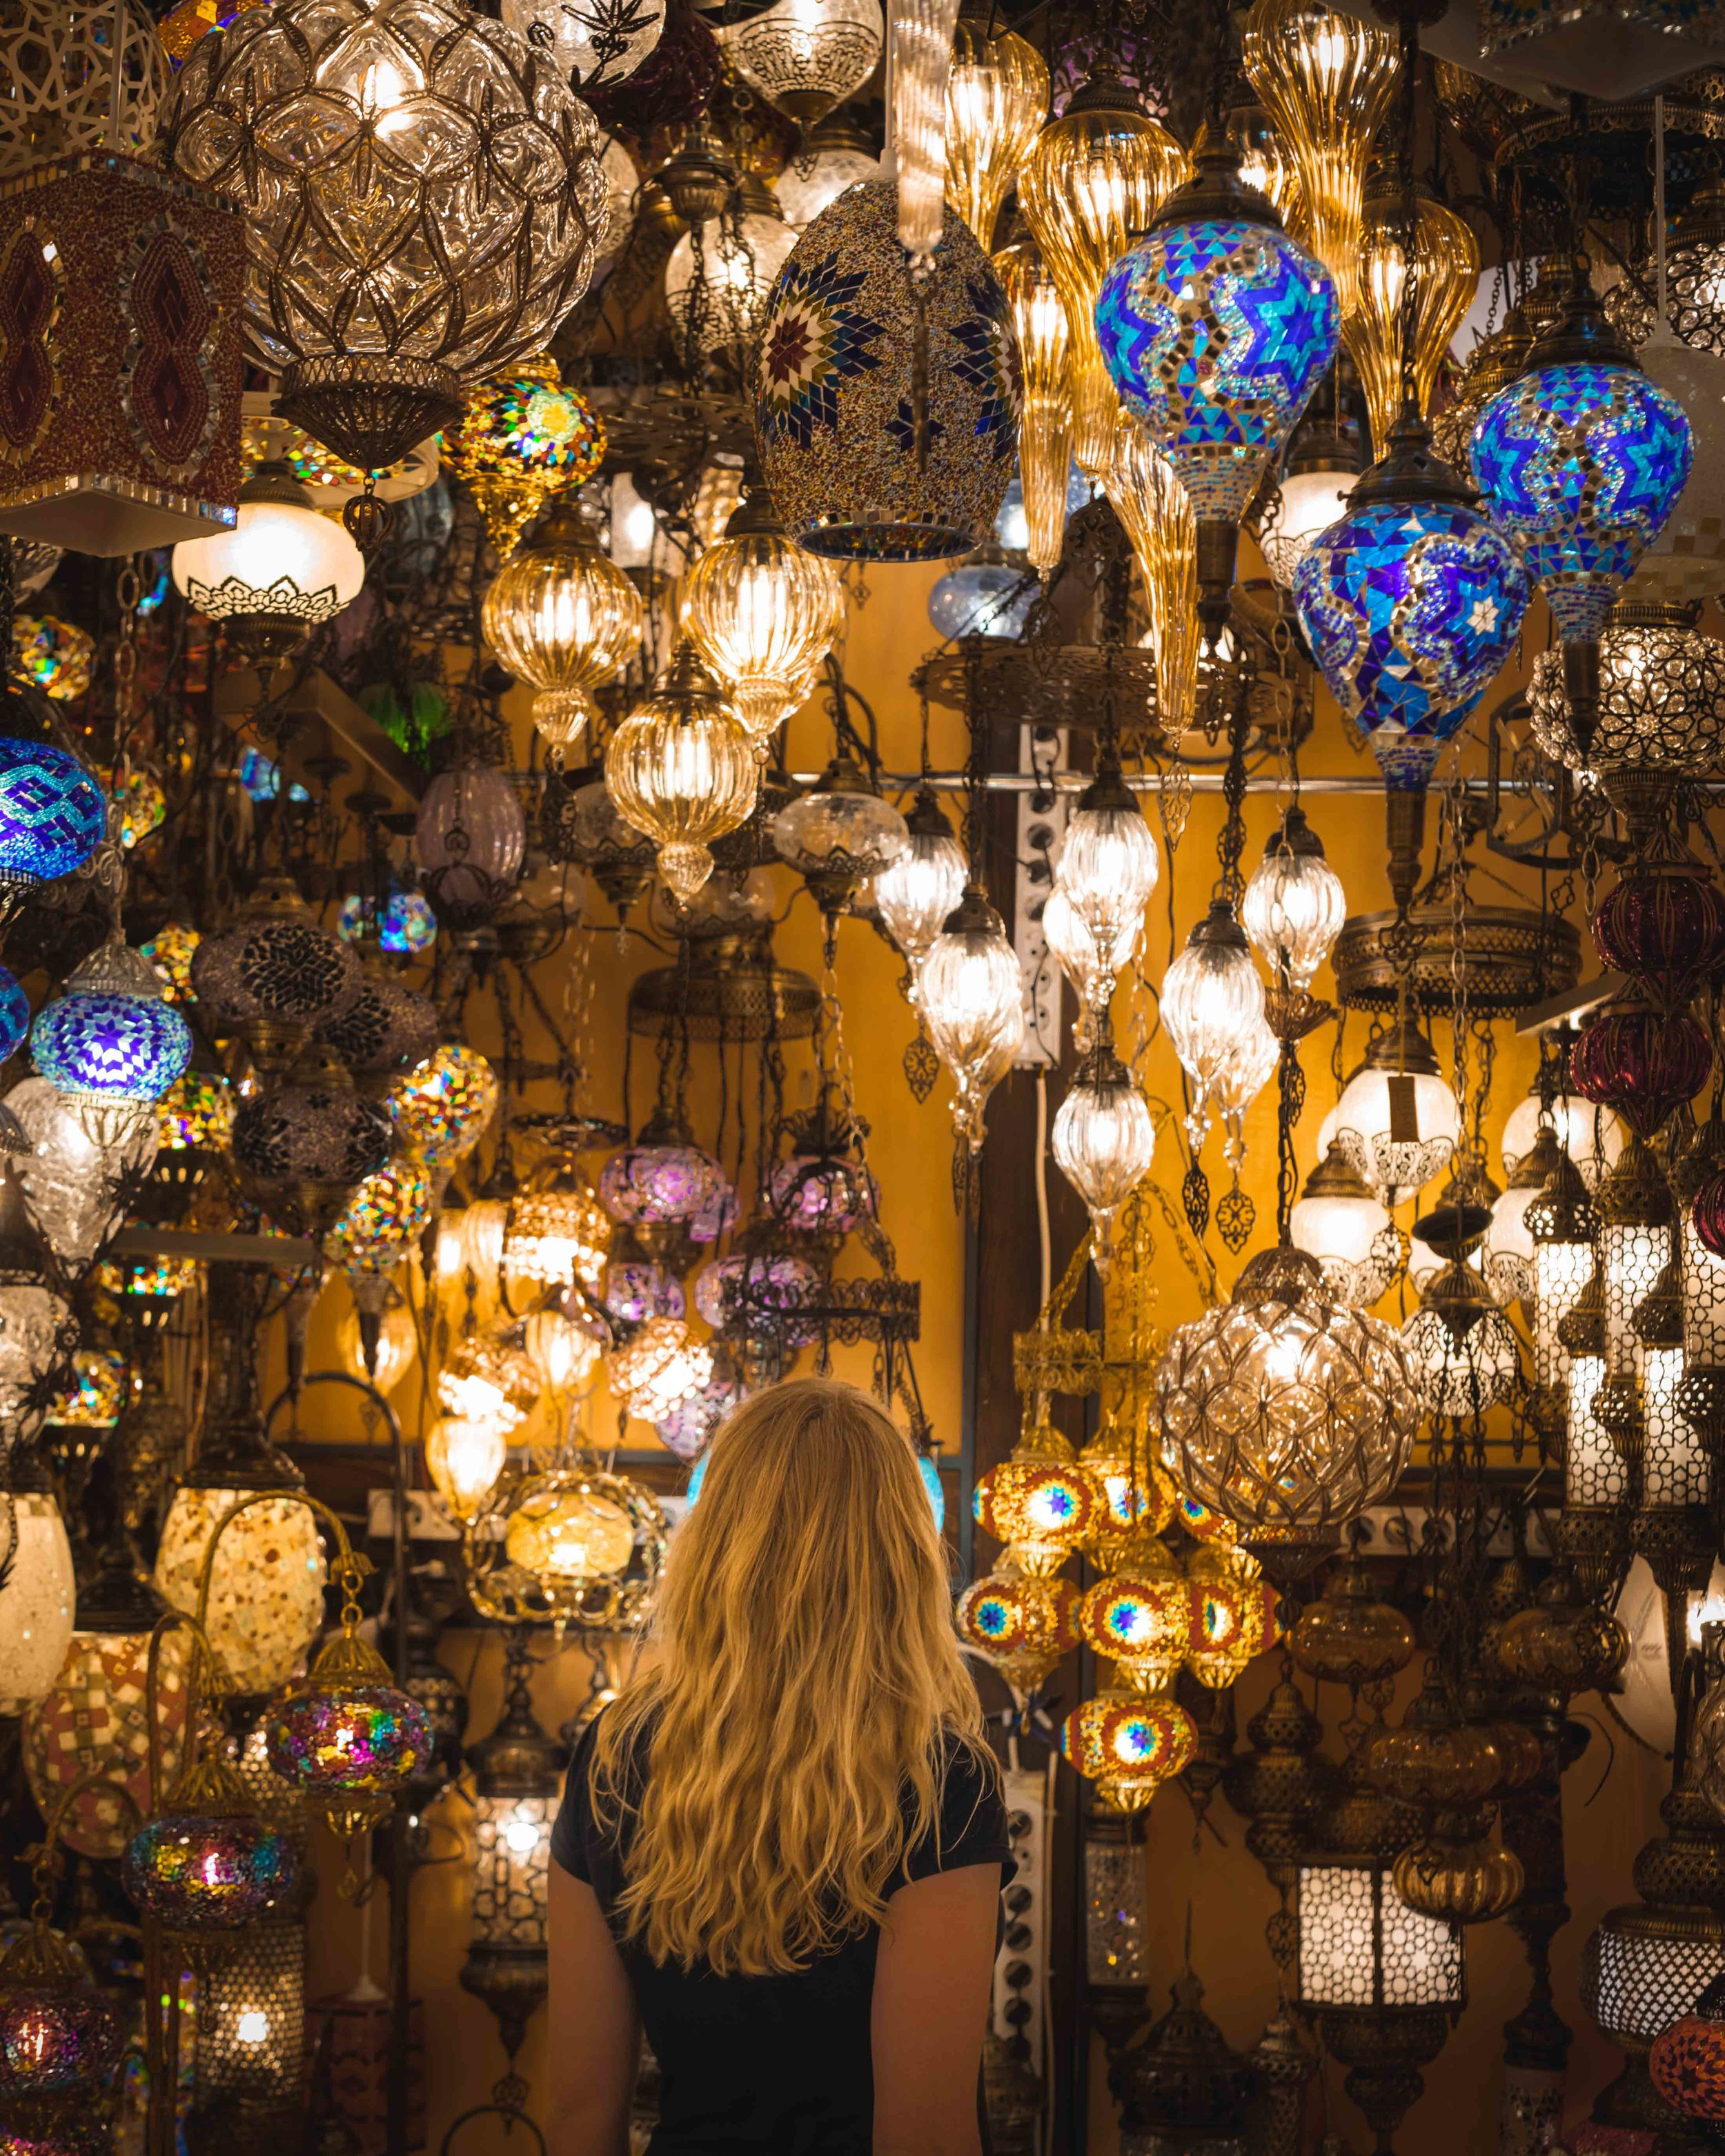 Instagrammable places in Turkey - Light shops in the Grand Bazaar